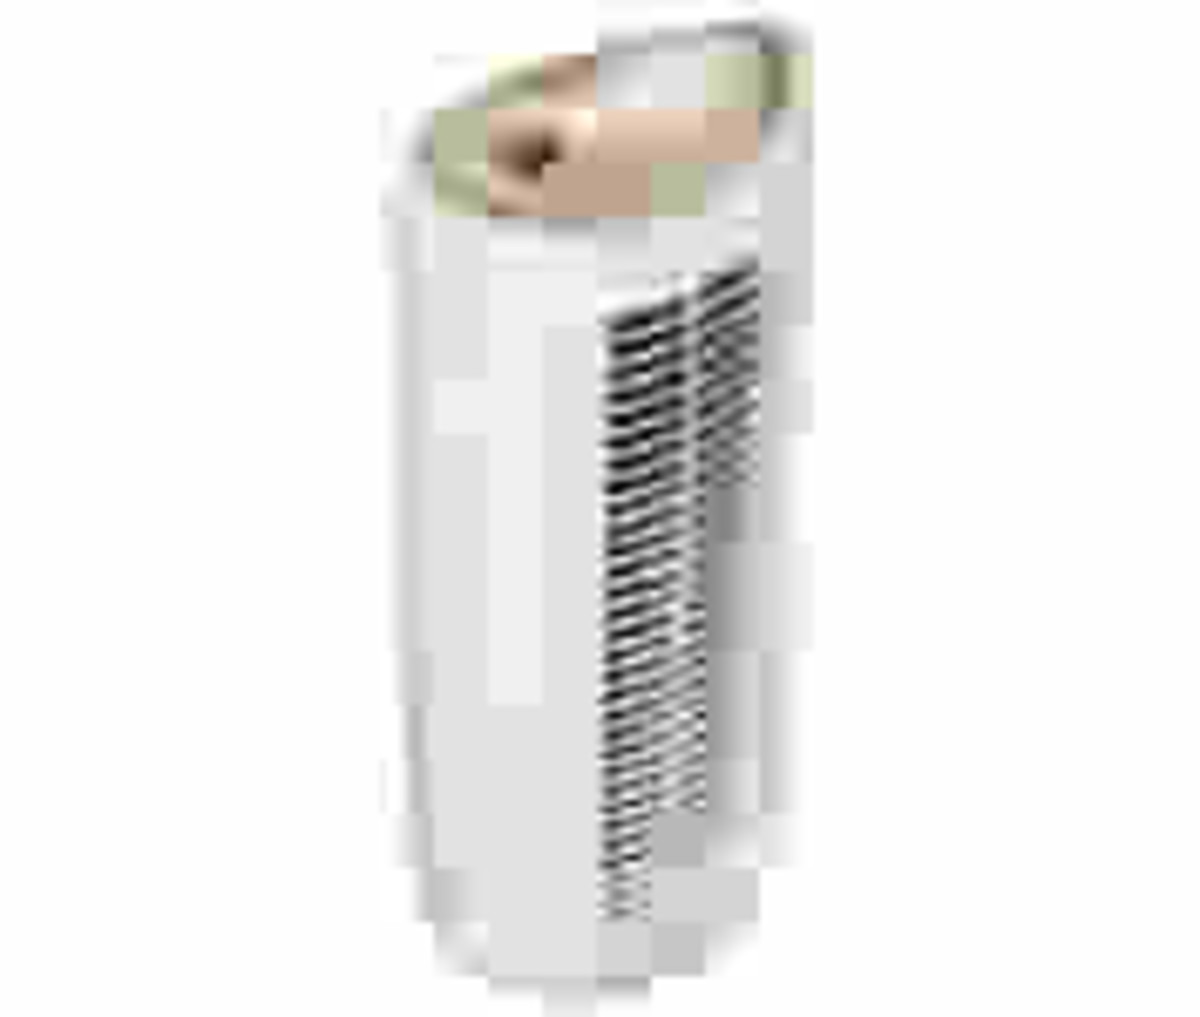 Tower Purifier with Air Filter for Your Room: Larger Honeywell Enviracaire Model 60000